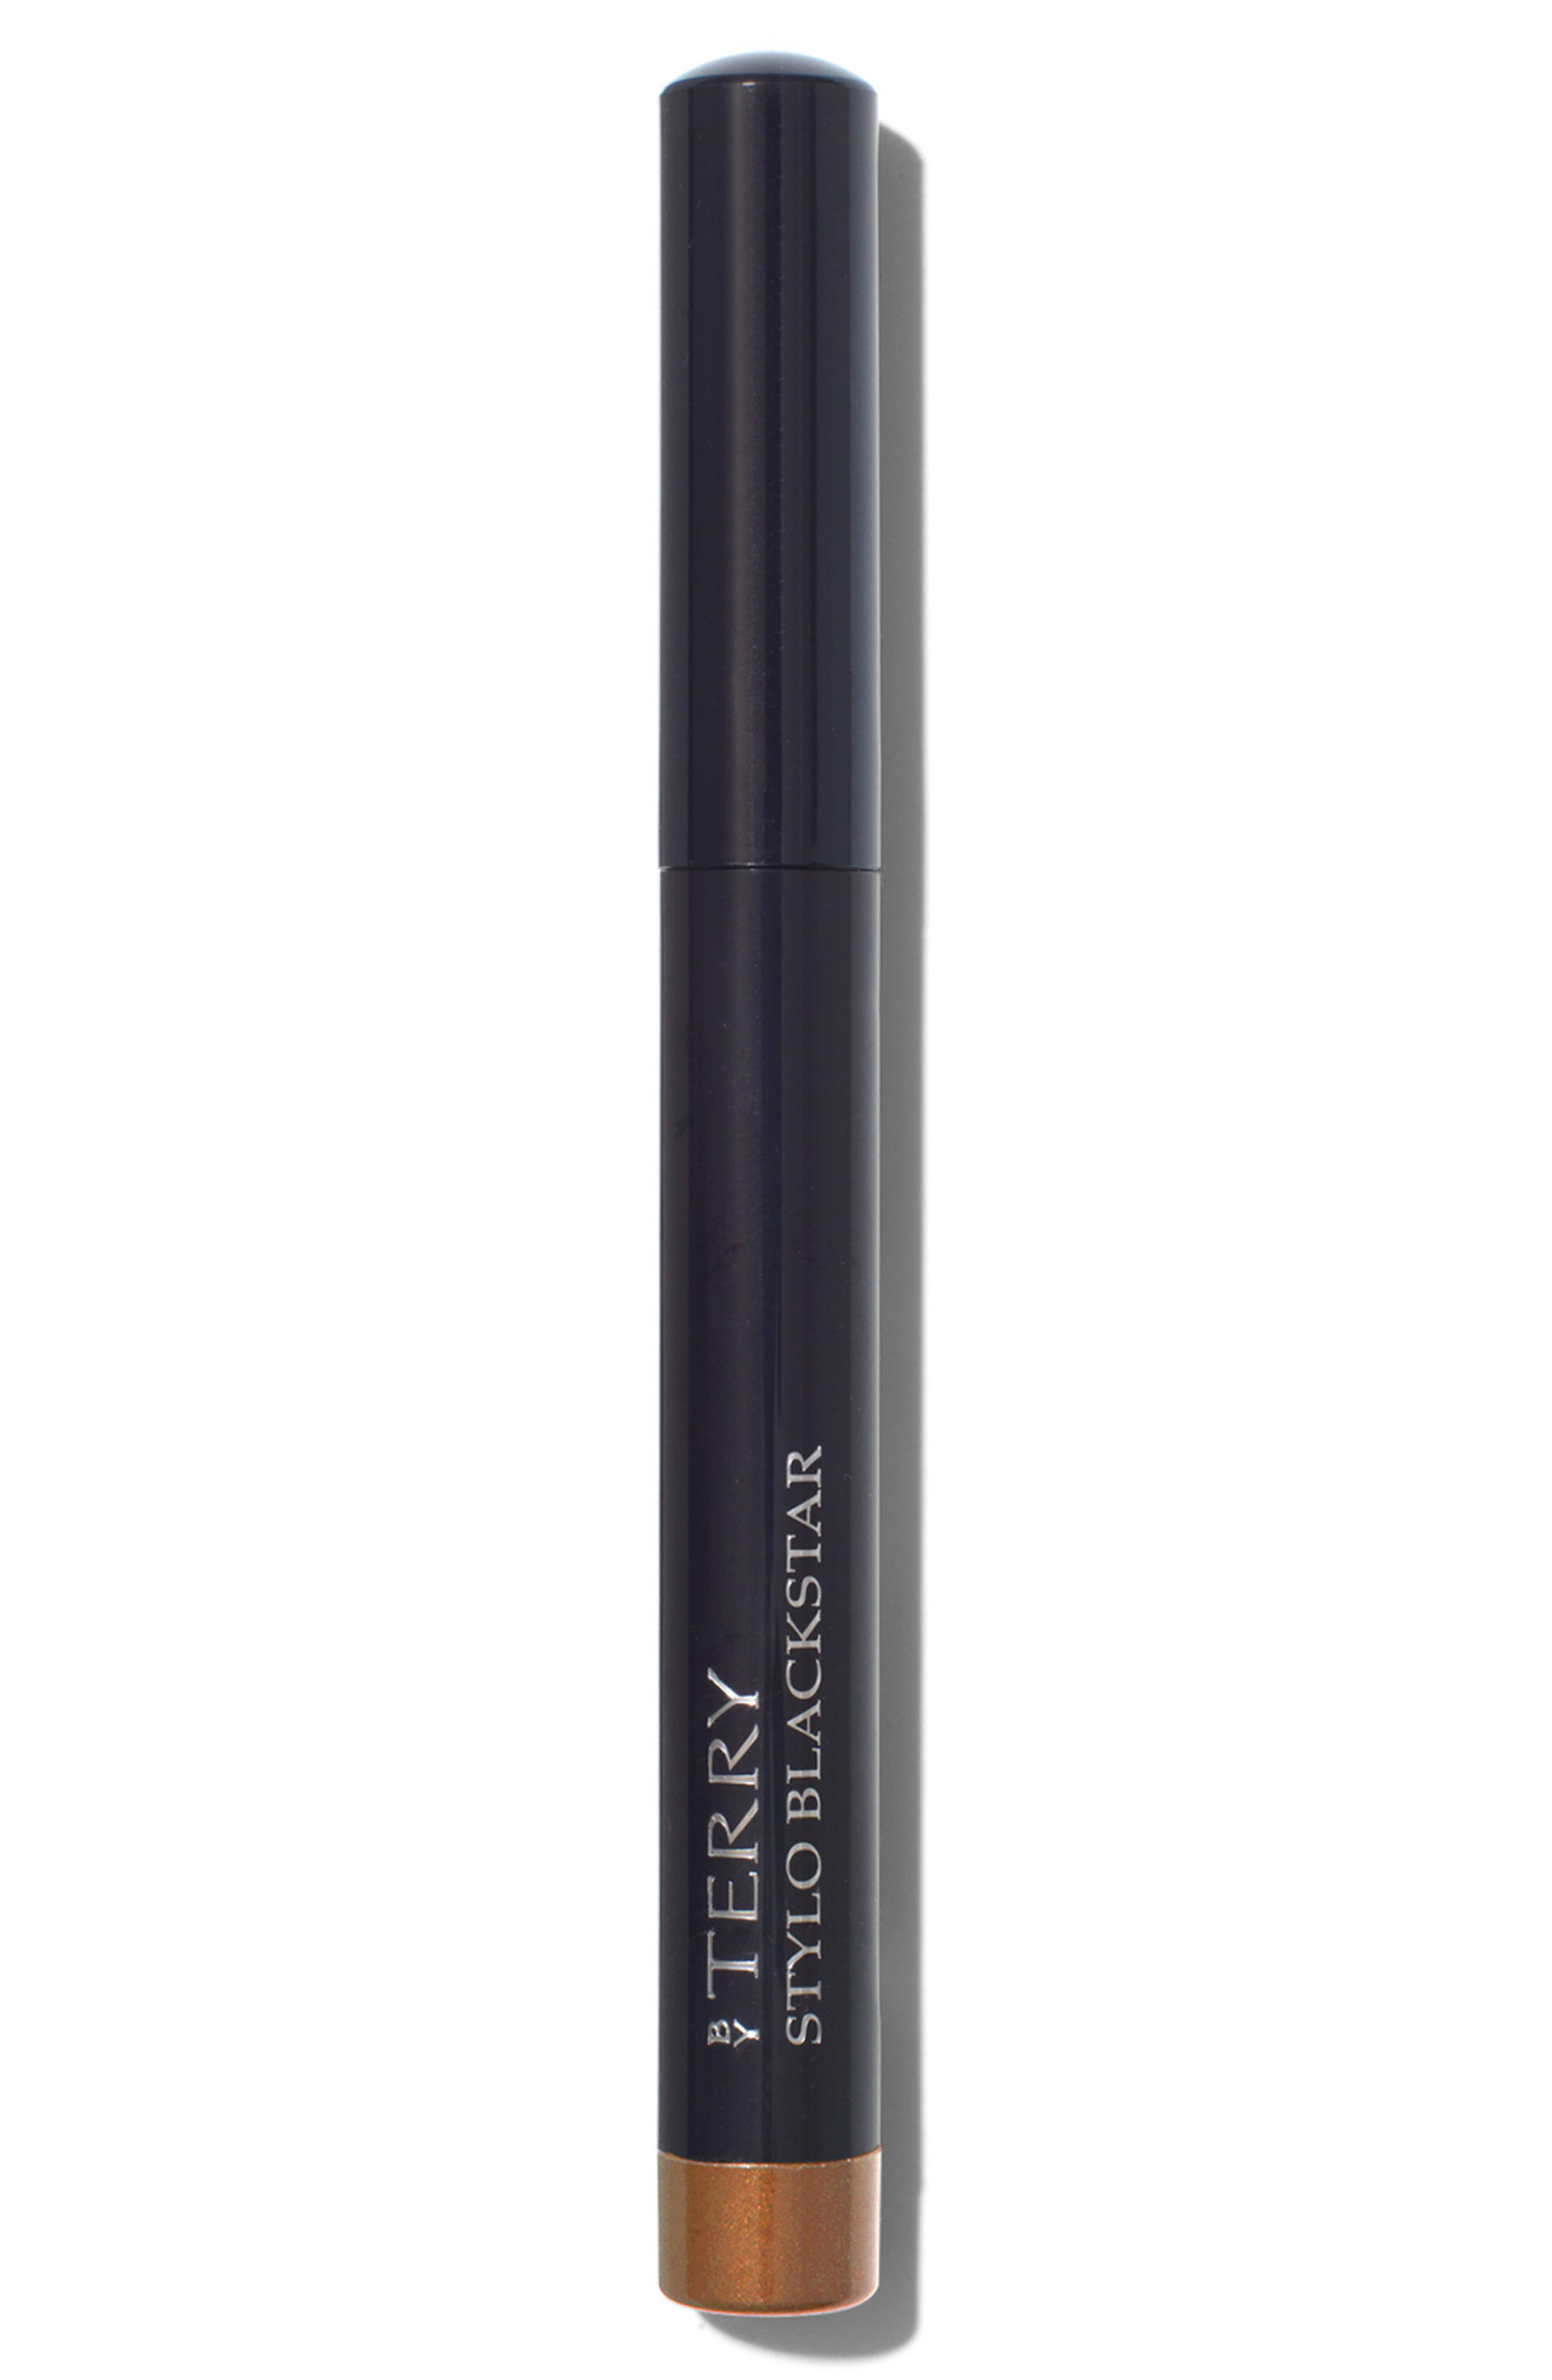 SPACE.NK.apothecary By Terry Stylo Blackstar Waterproof 3-in-1 Eye Pencil,                             Alternate thumbnail 3, color,                             4 Copper Crush